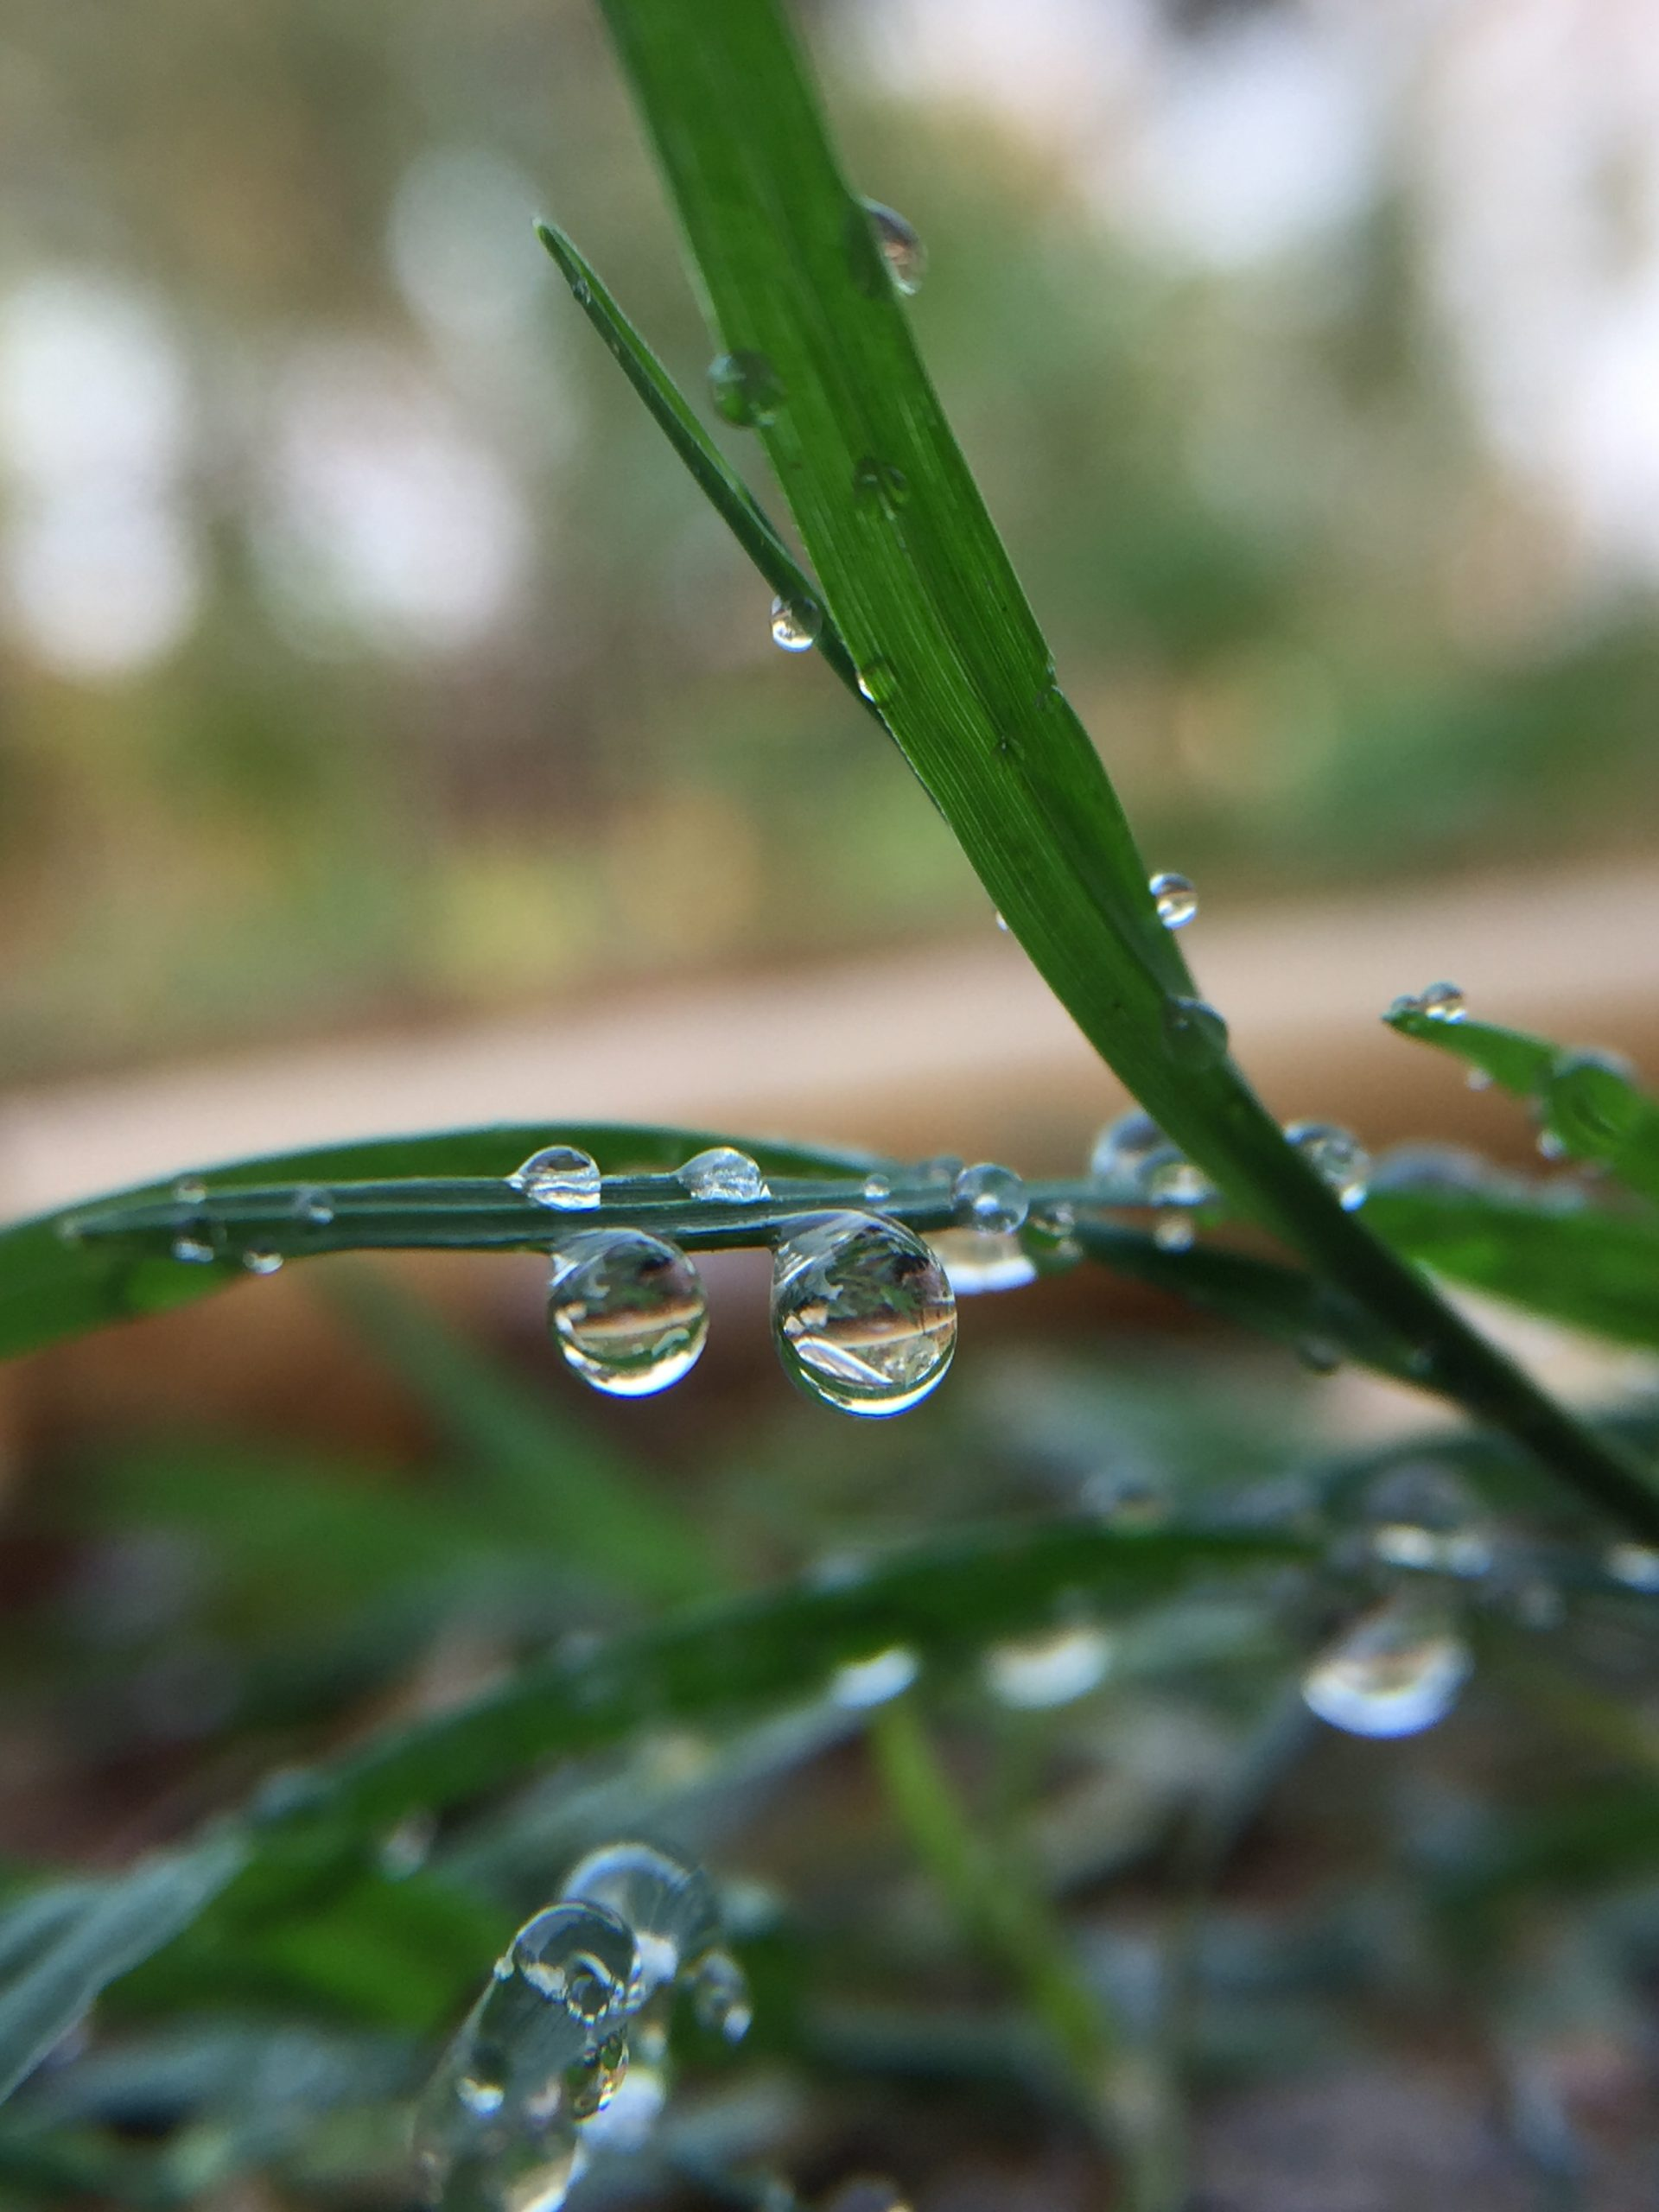 Drops on plant leaf